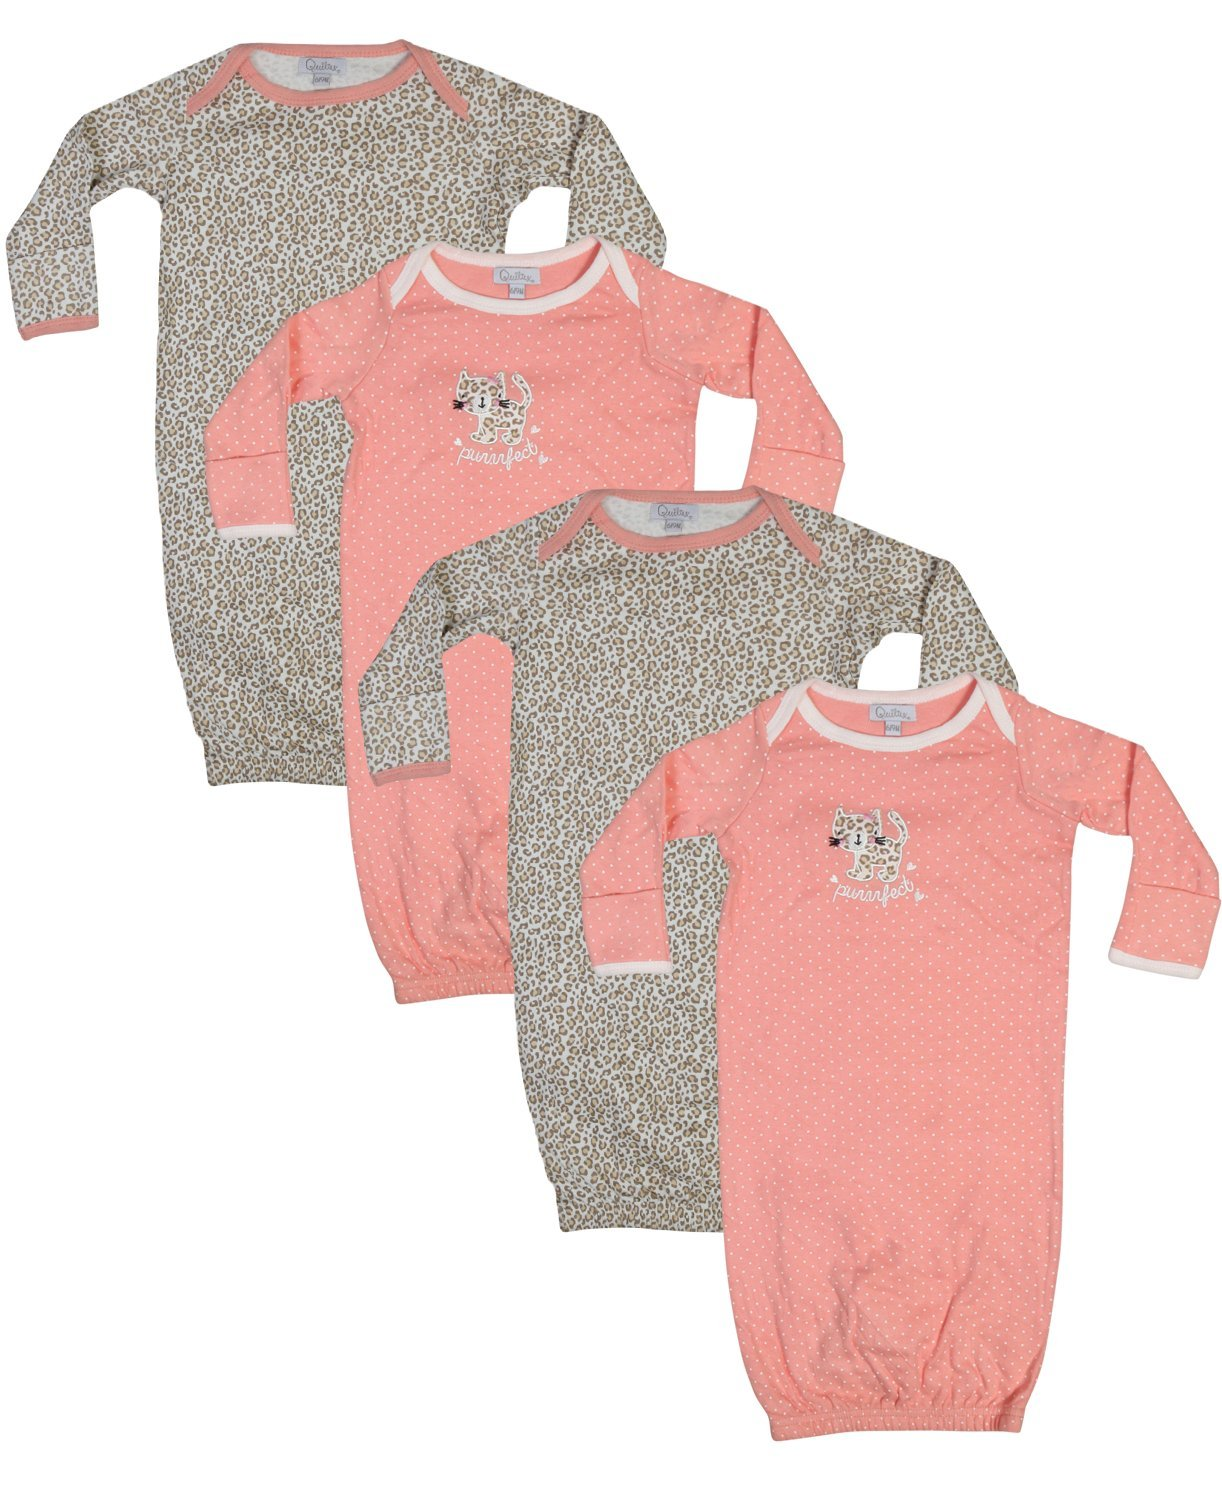 Quiltex Baby Girls and Boys Cotton Gown (4 Pack) Purrfect, 3-6 Months'